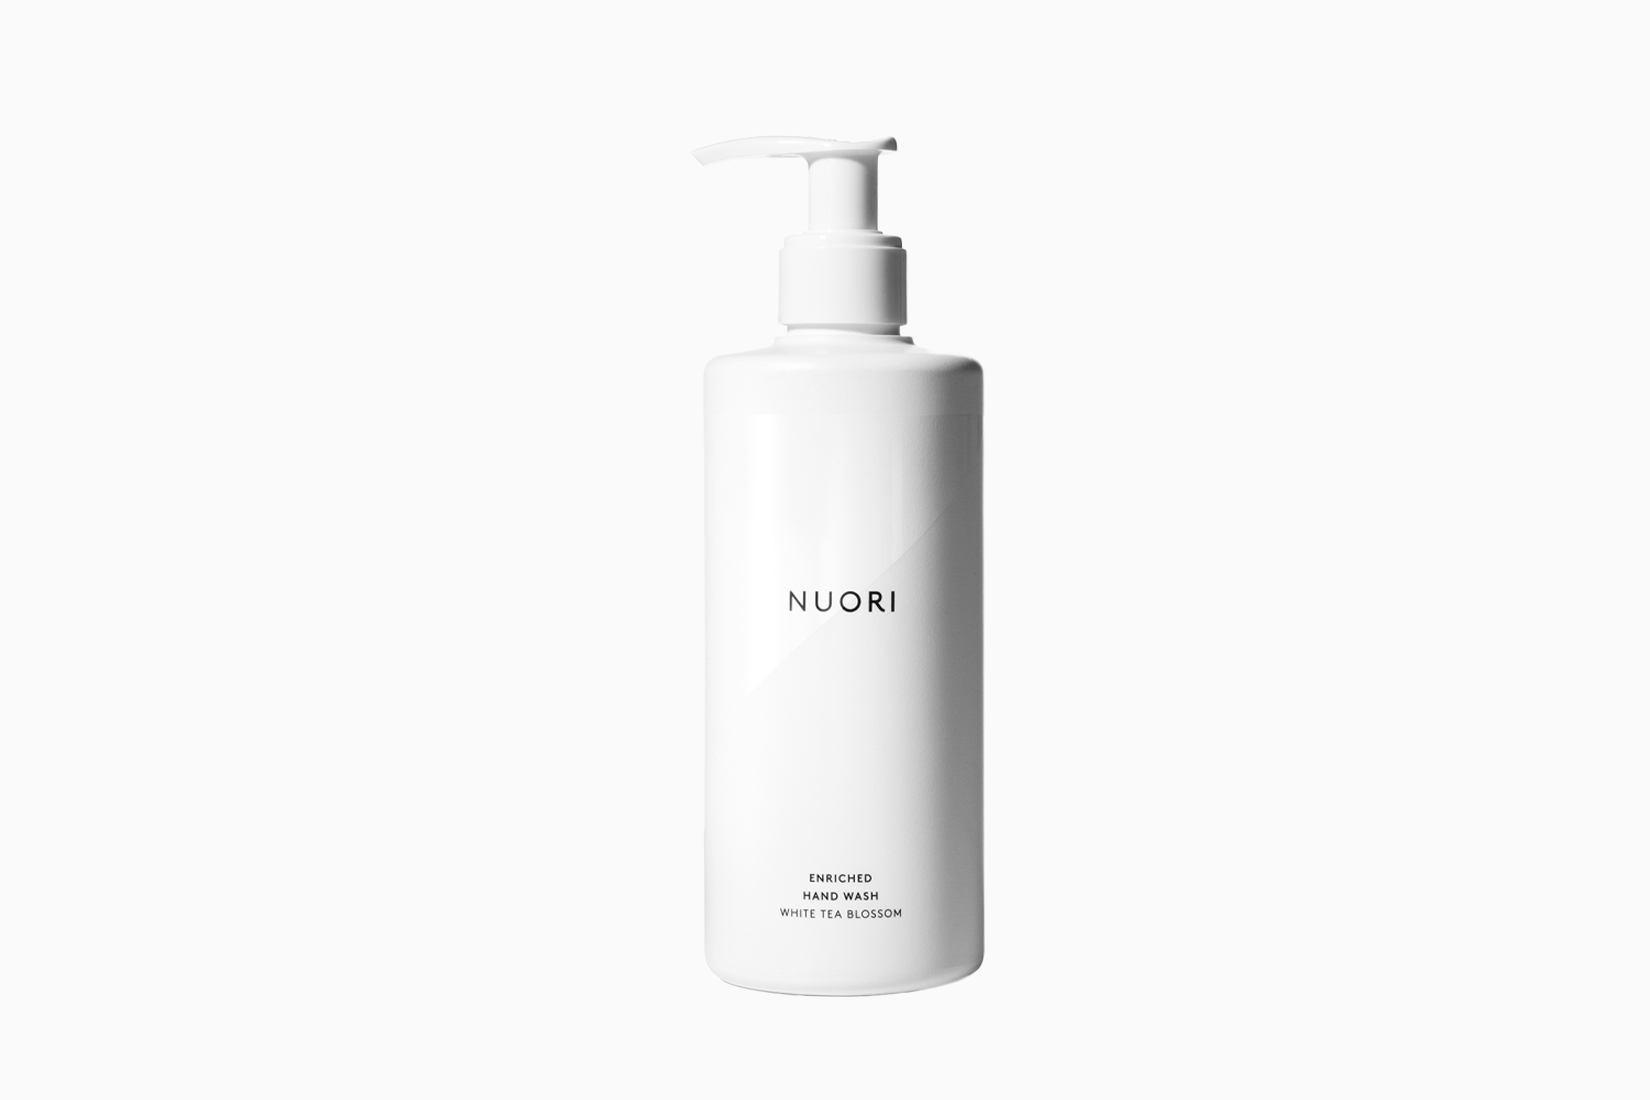 best hand soap nuori review - Luxe Digital